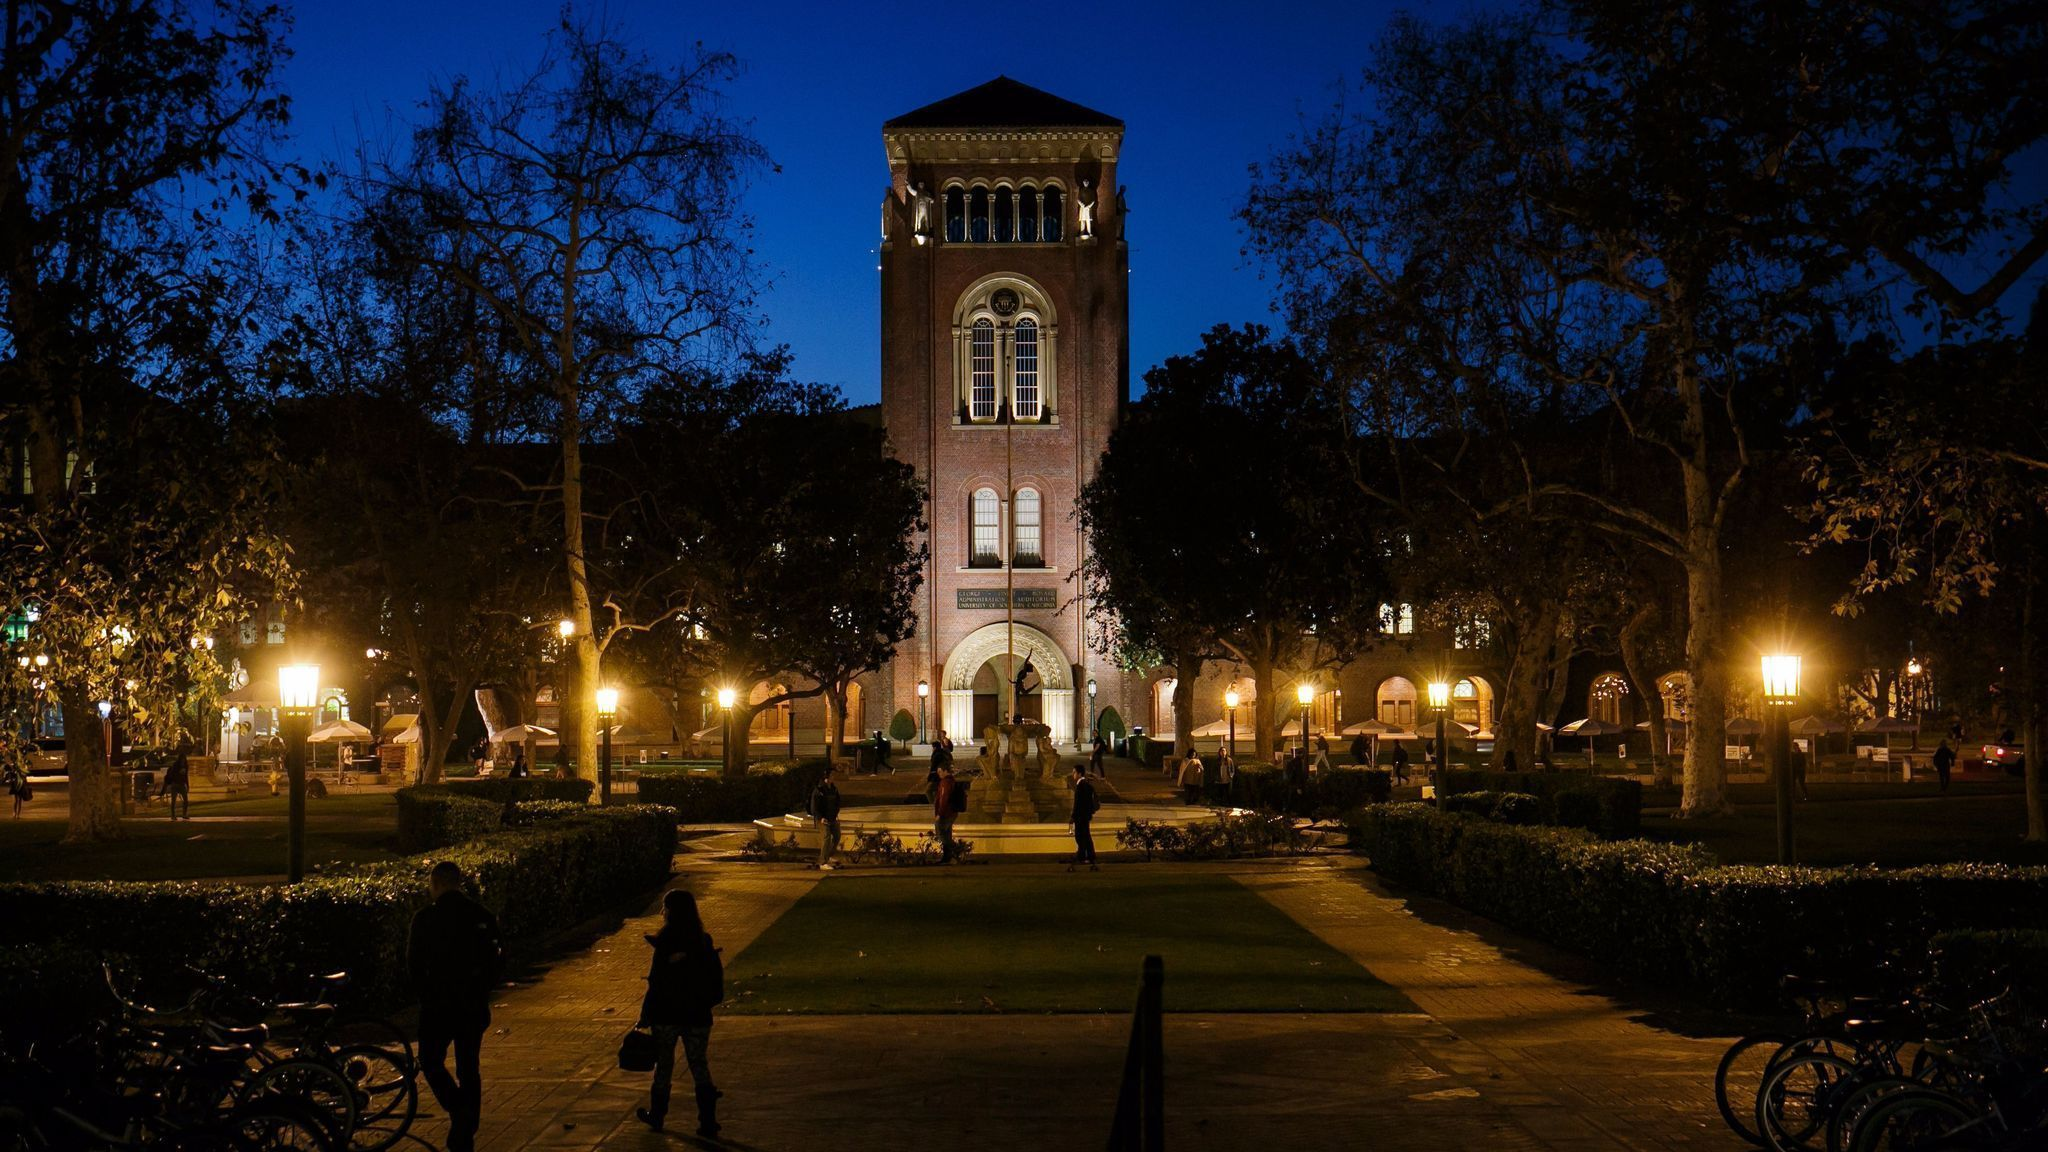 Usc Campus At Night Case against USC stude...